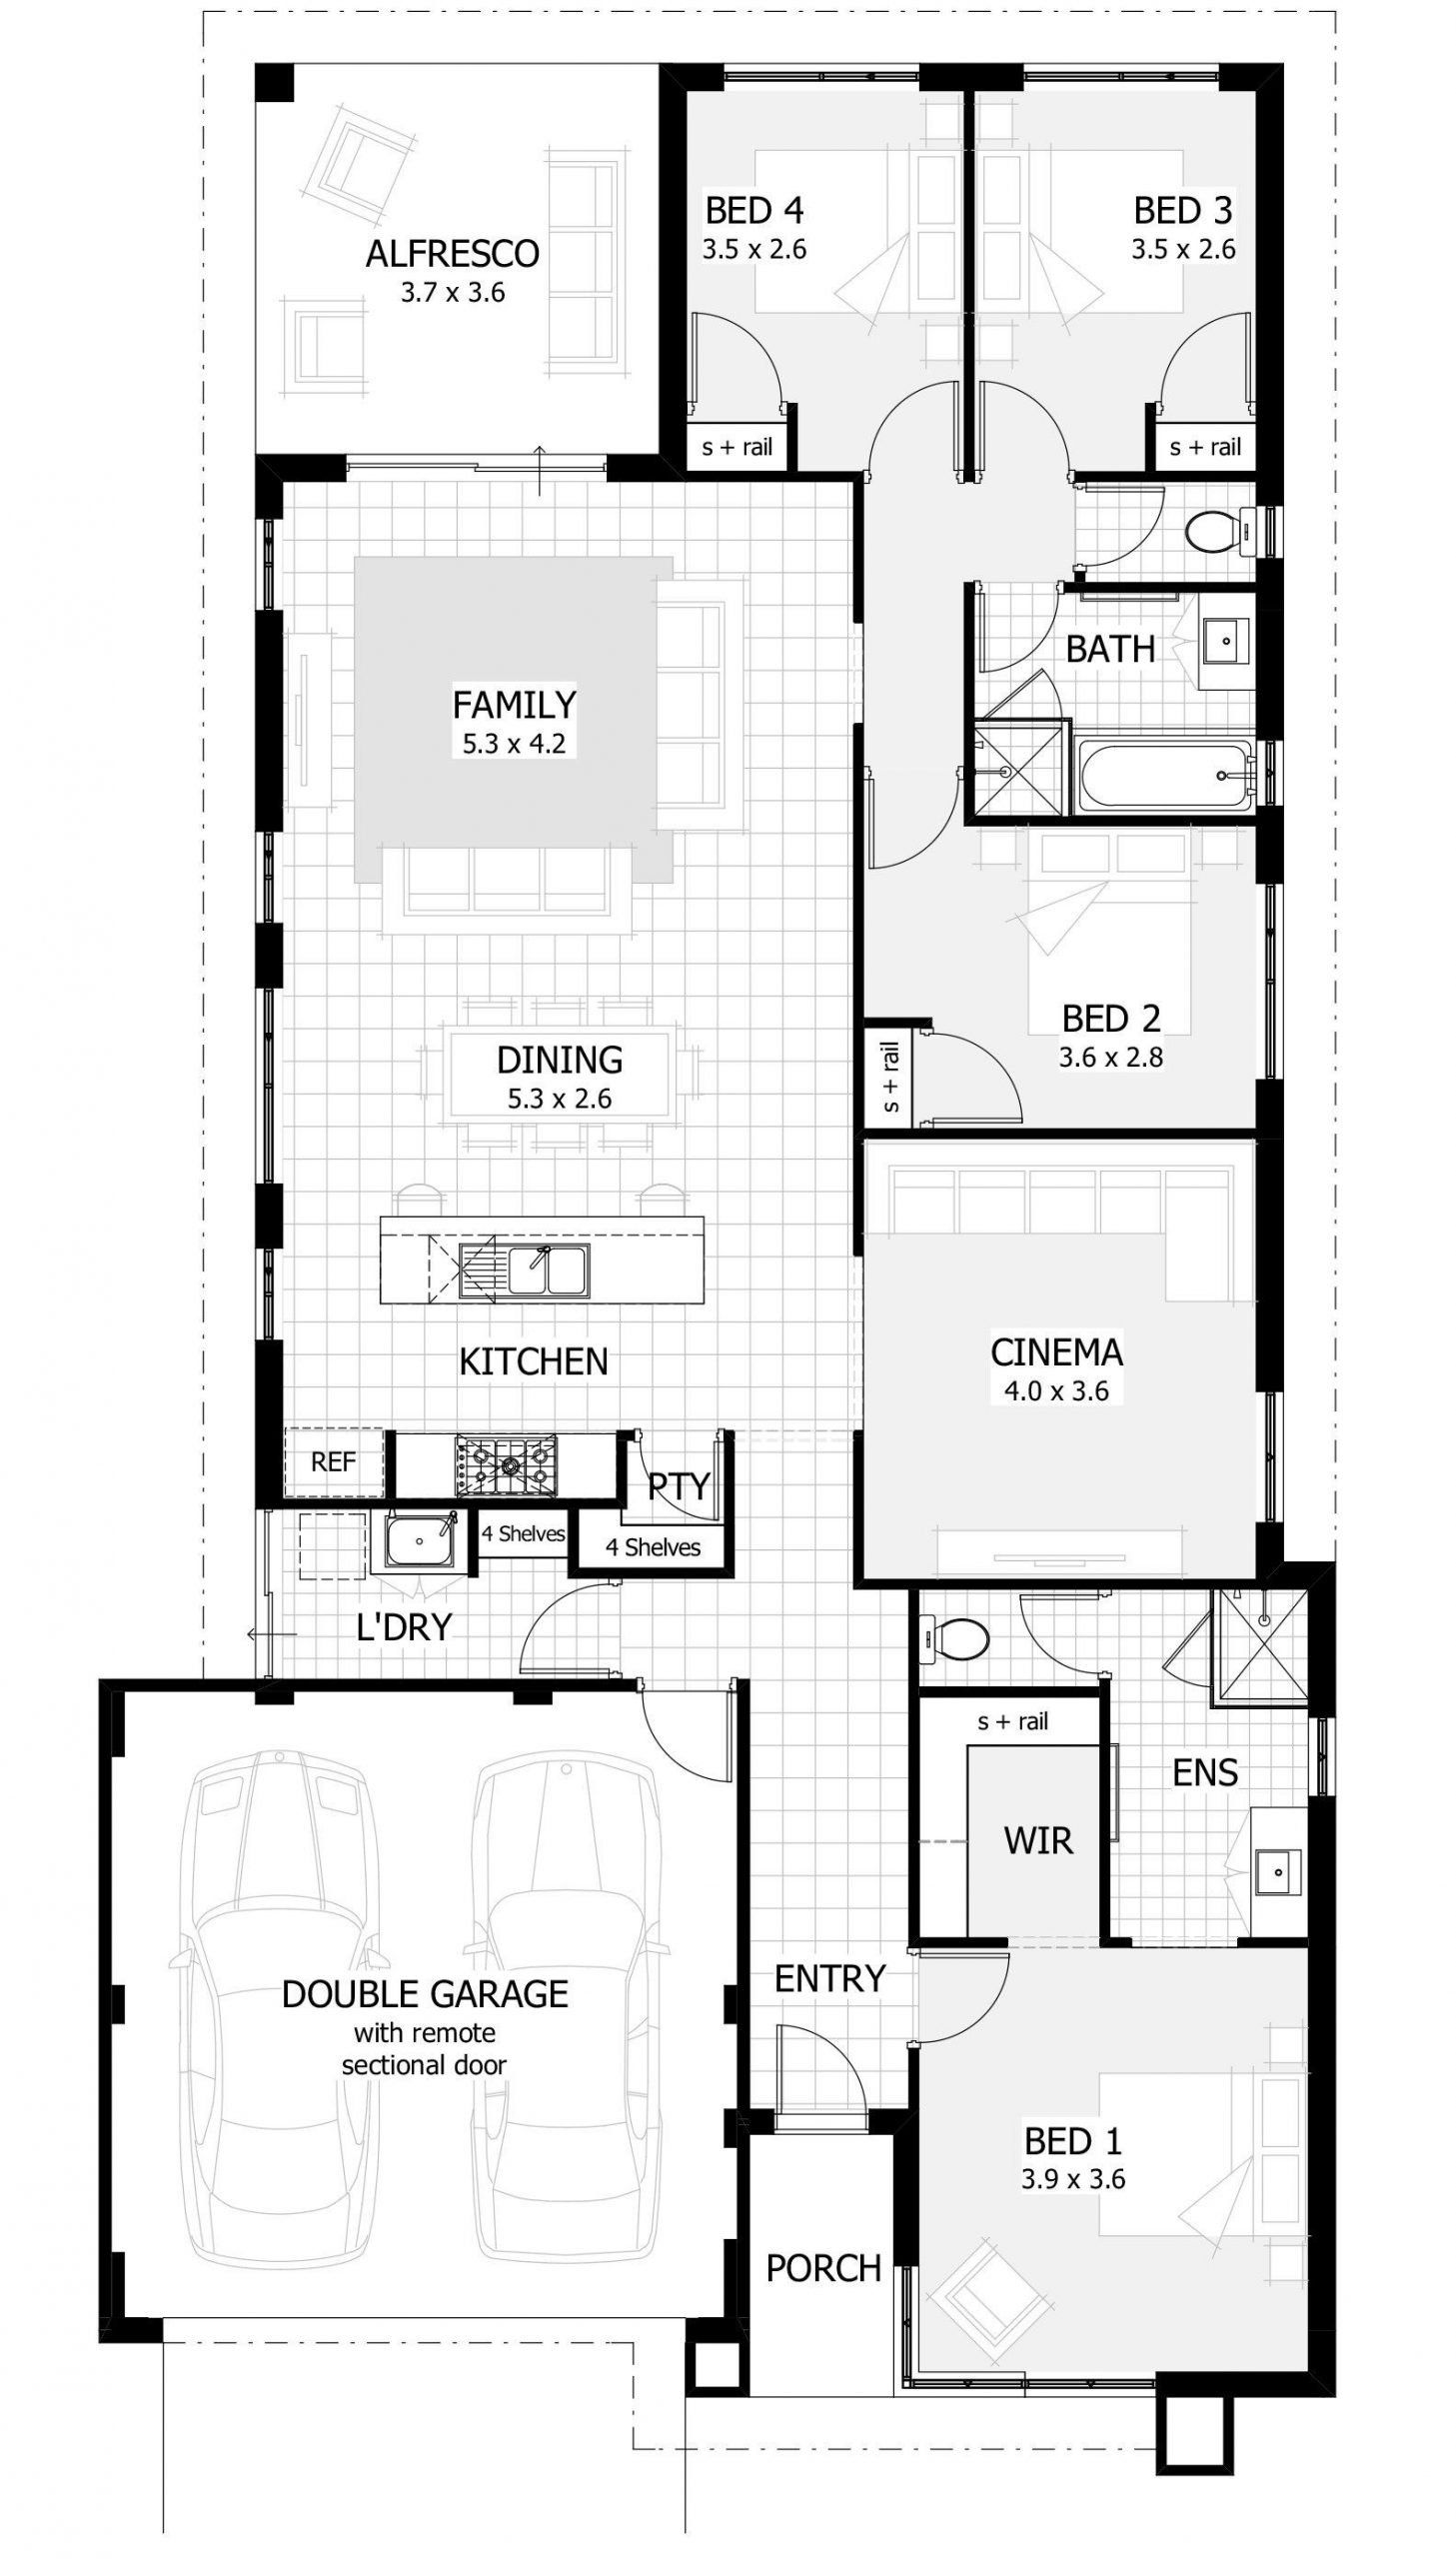 Modern House Plans Australia Best Single Story House Designs Australia Fusmun Single Storey House Plans Narrow House Plans 4 Bedroom House Plans